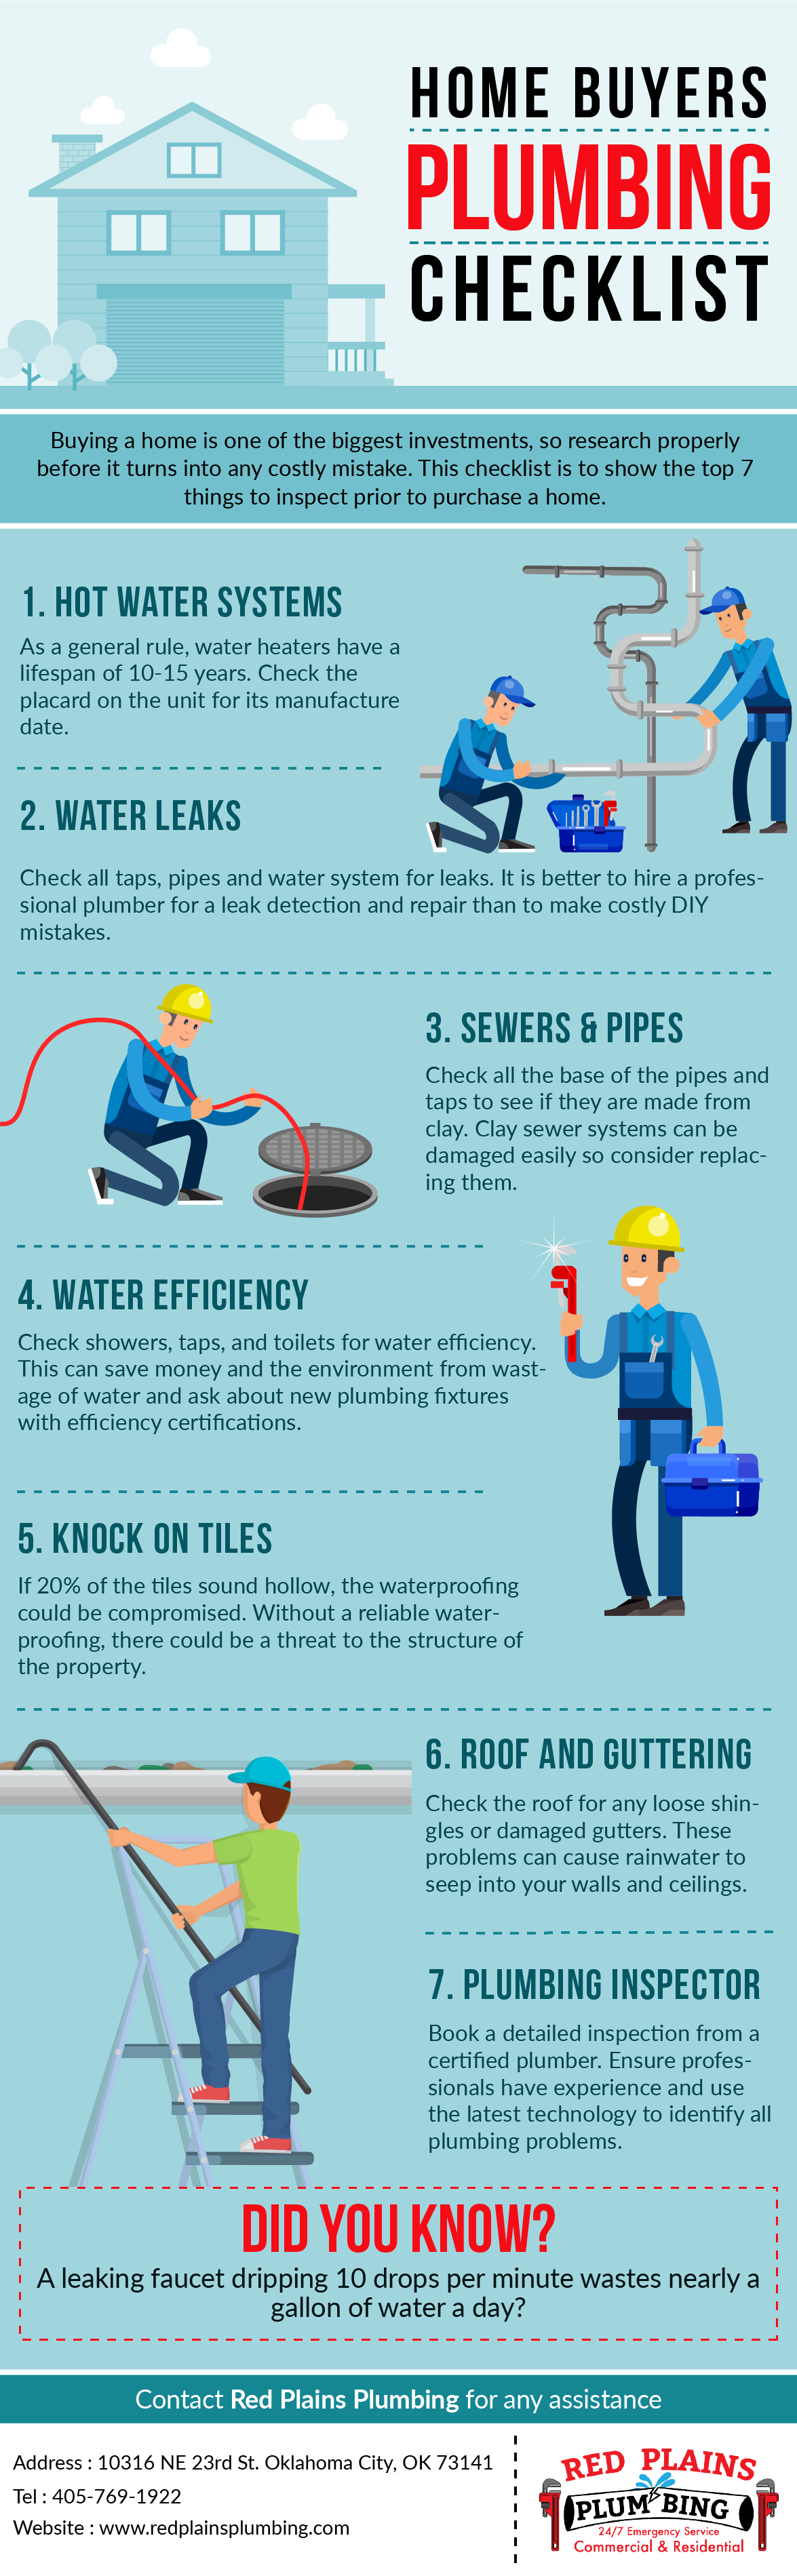 Home Buyers Plumbing Check List With Images Hot Water System Plumbing